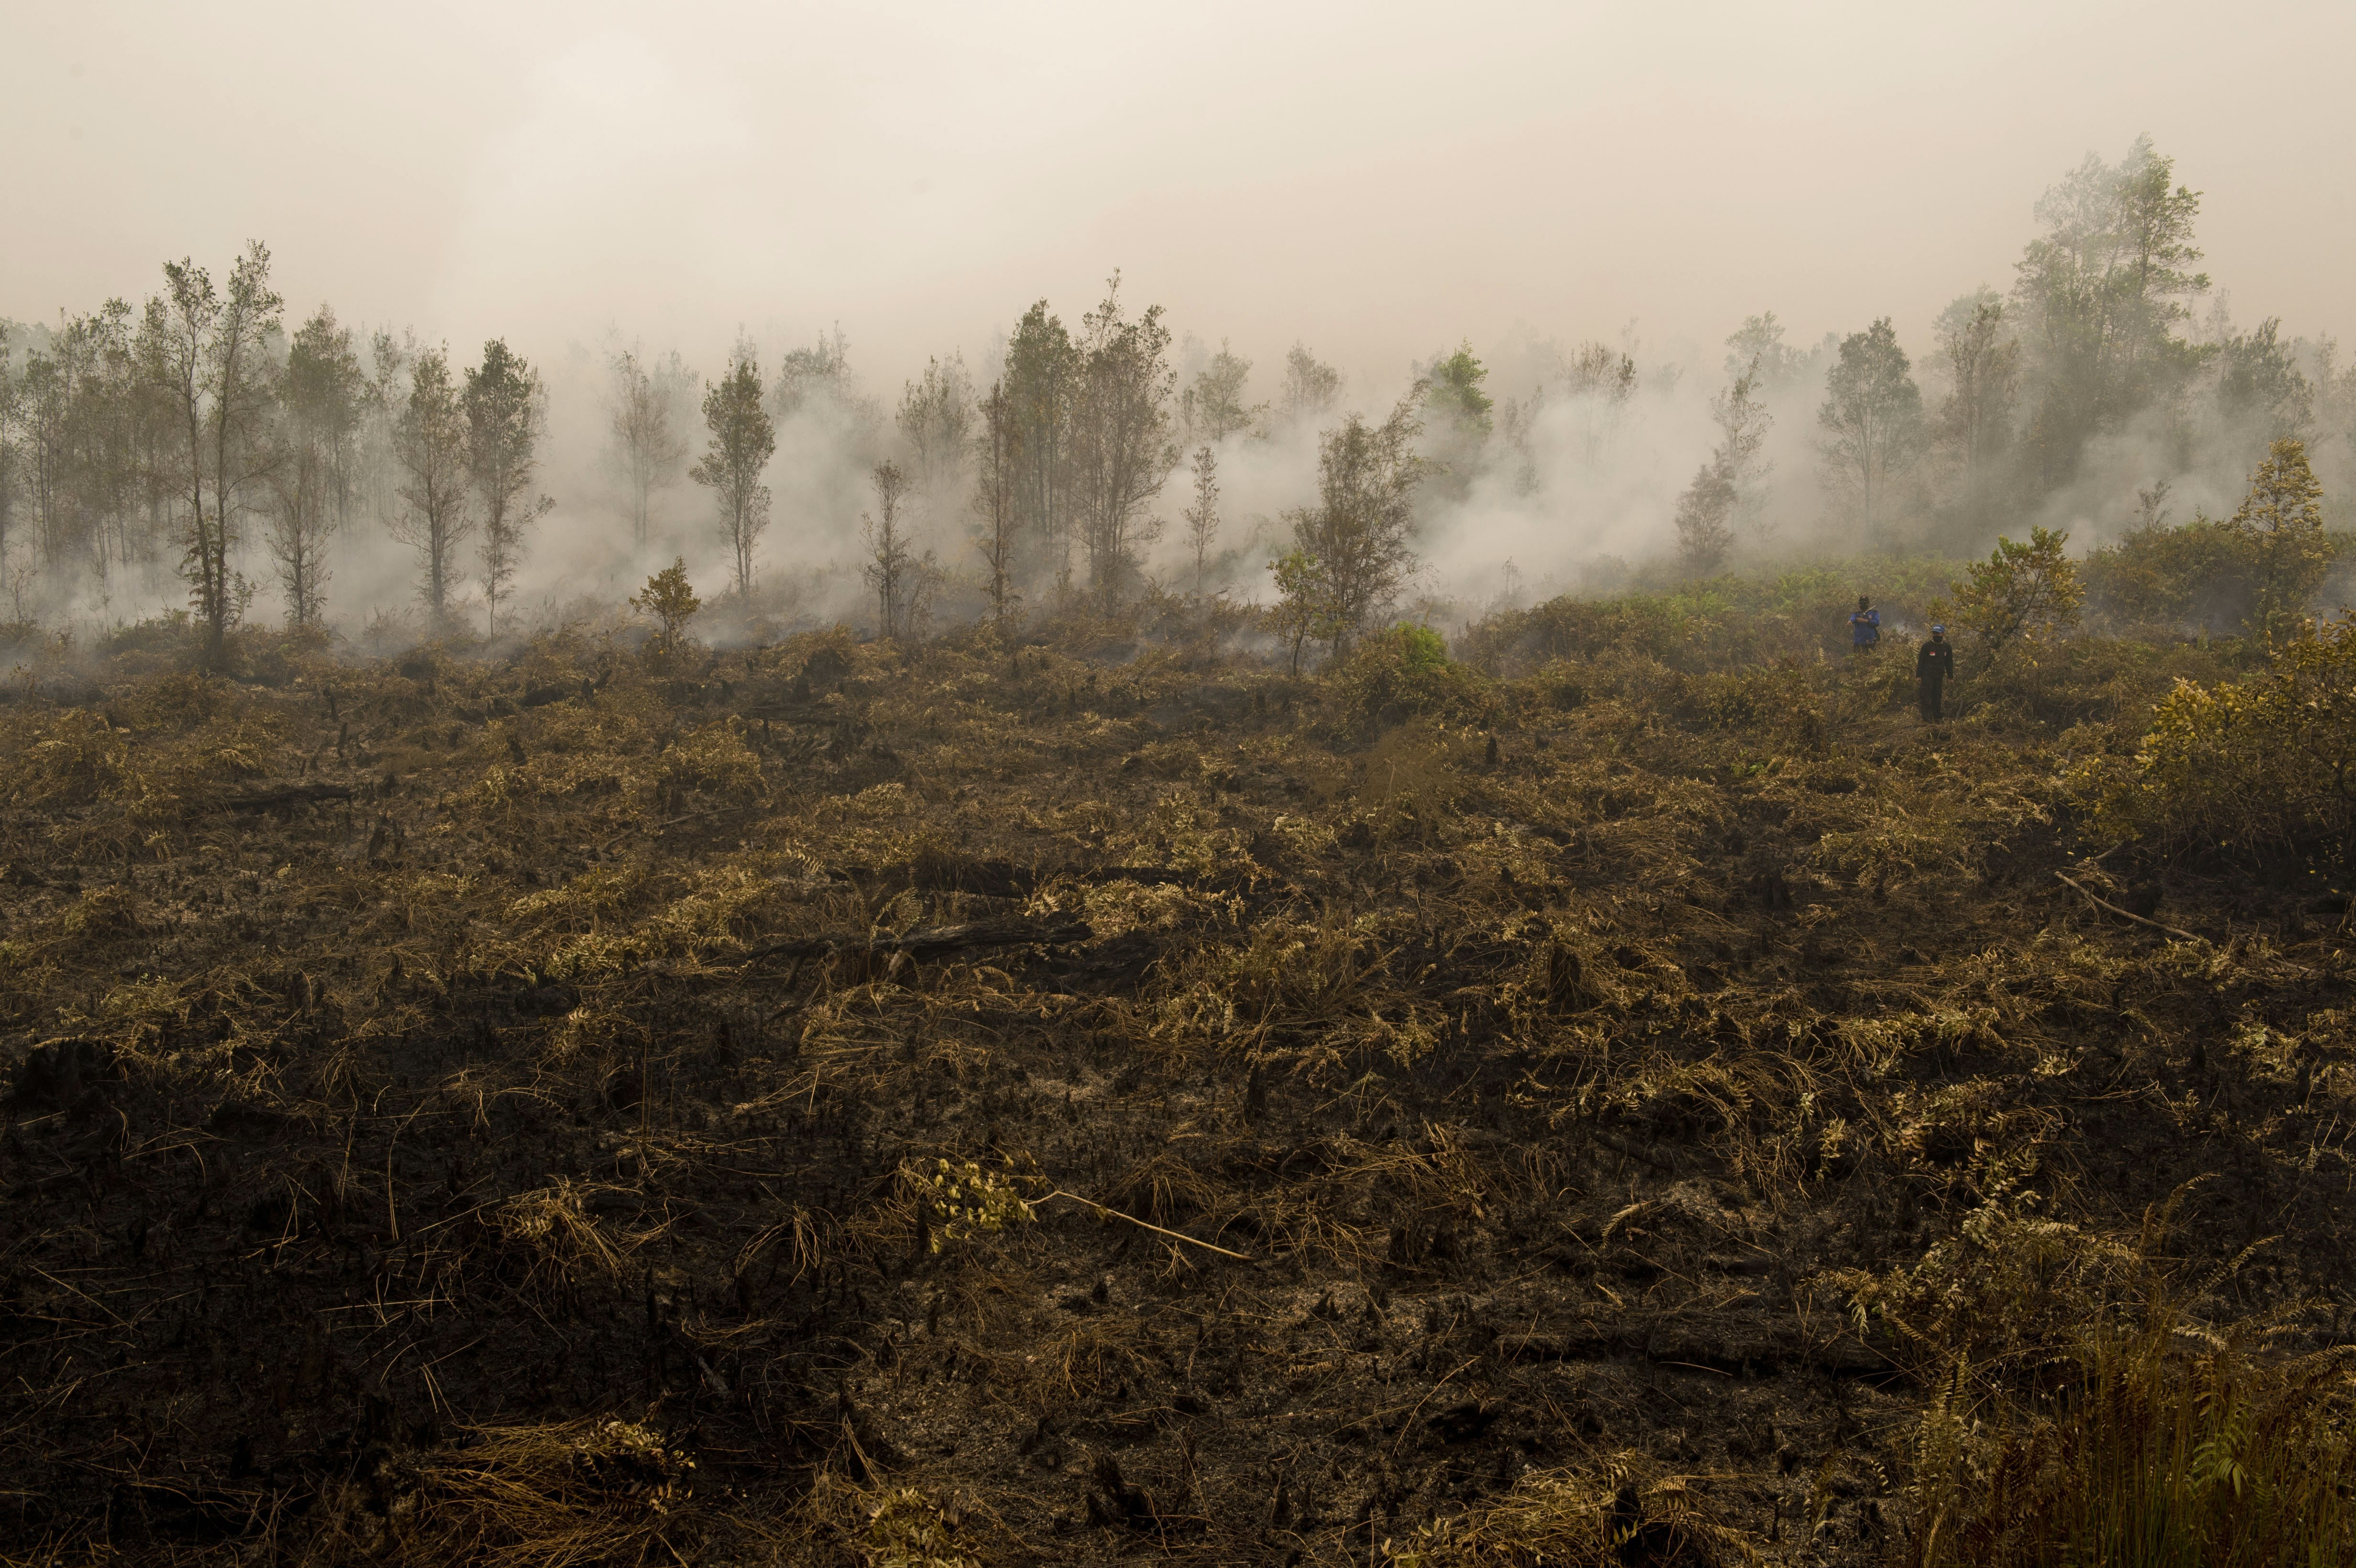 Indonesian firefighters extinguish fire on a vast burning peatland forest in Jabiren Raya district in Indonesia's Central Kalimantan province on Borneo island on Sept. 24, 2015